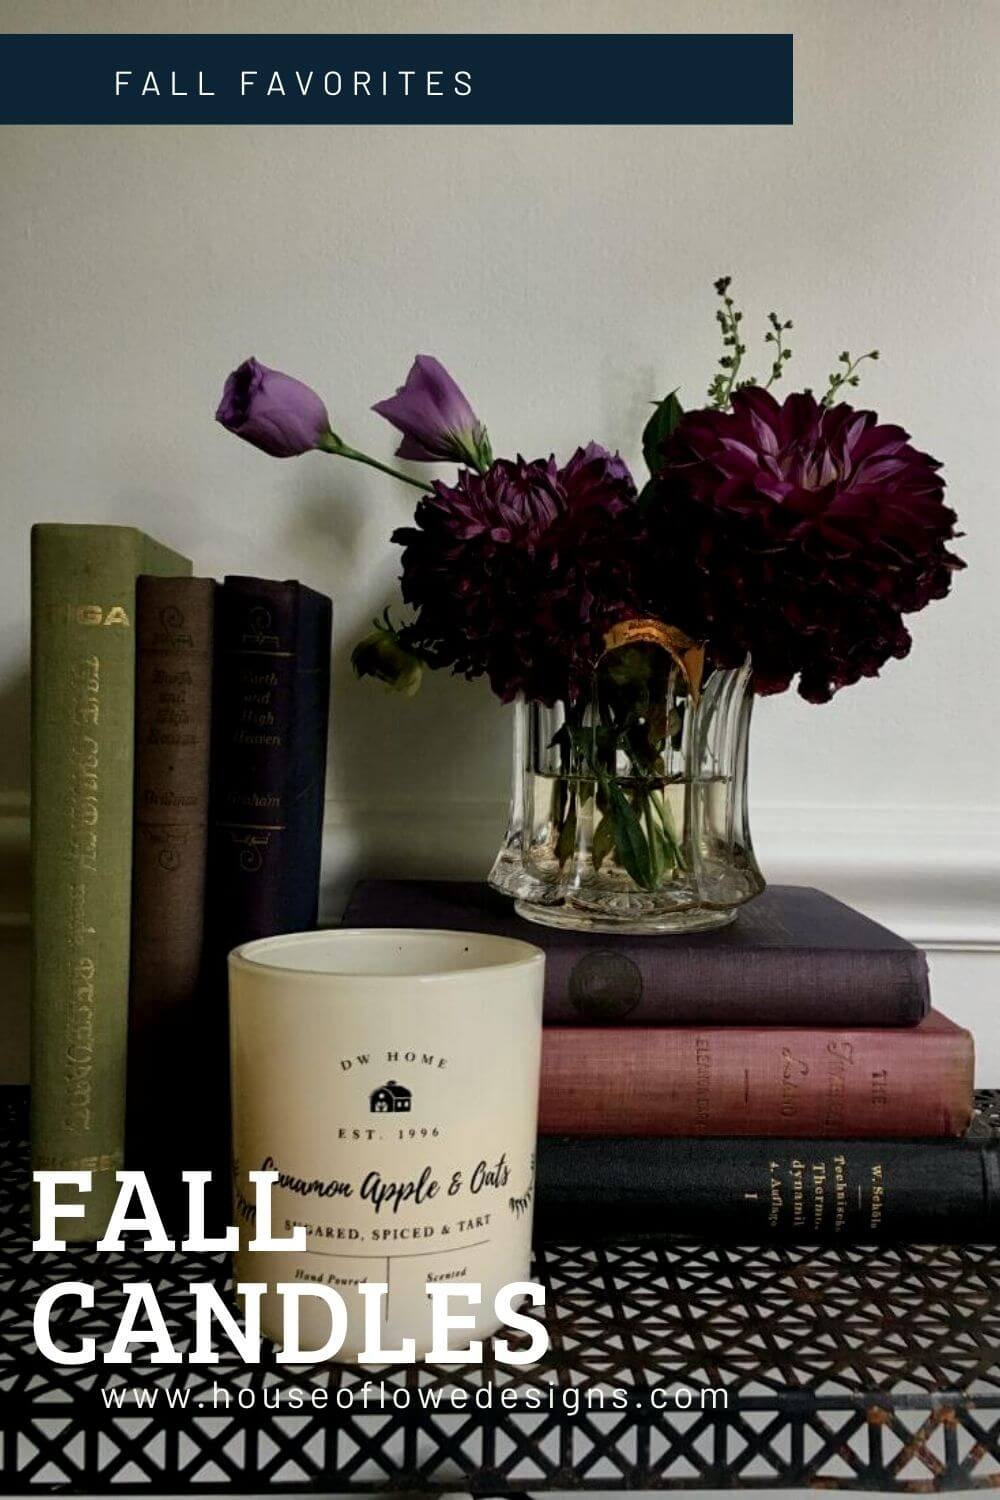 Fall Candle mixed with old books and moody florals